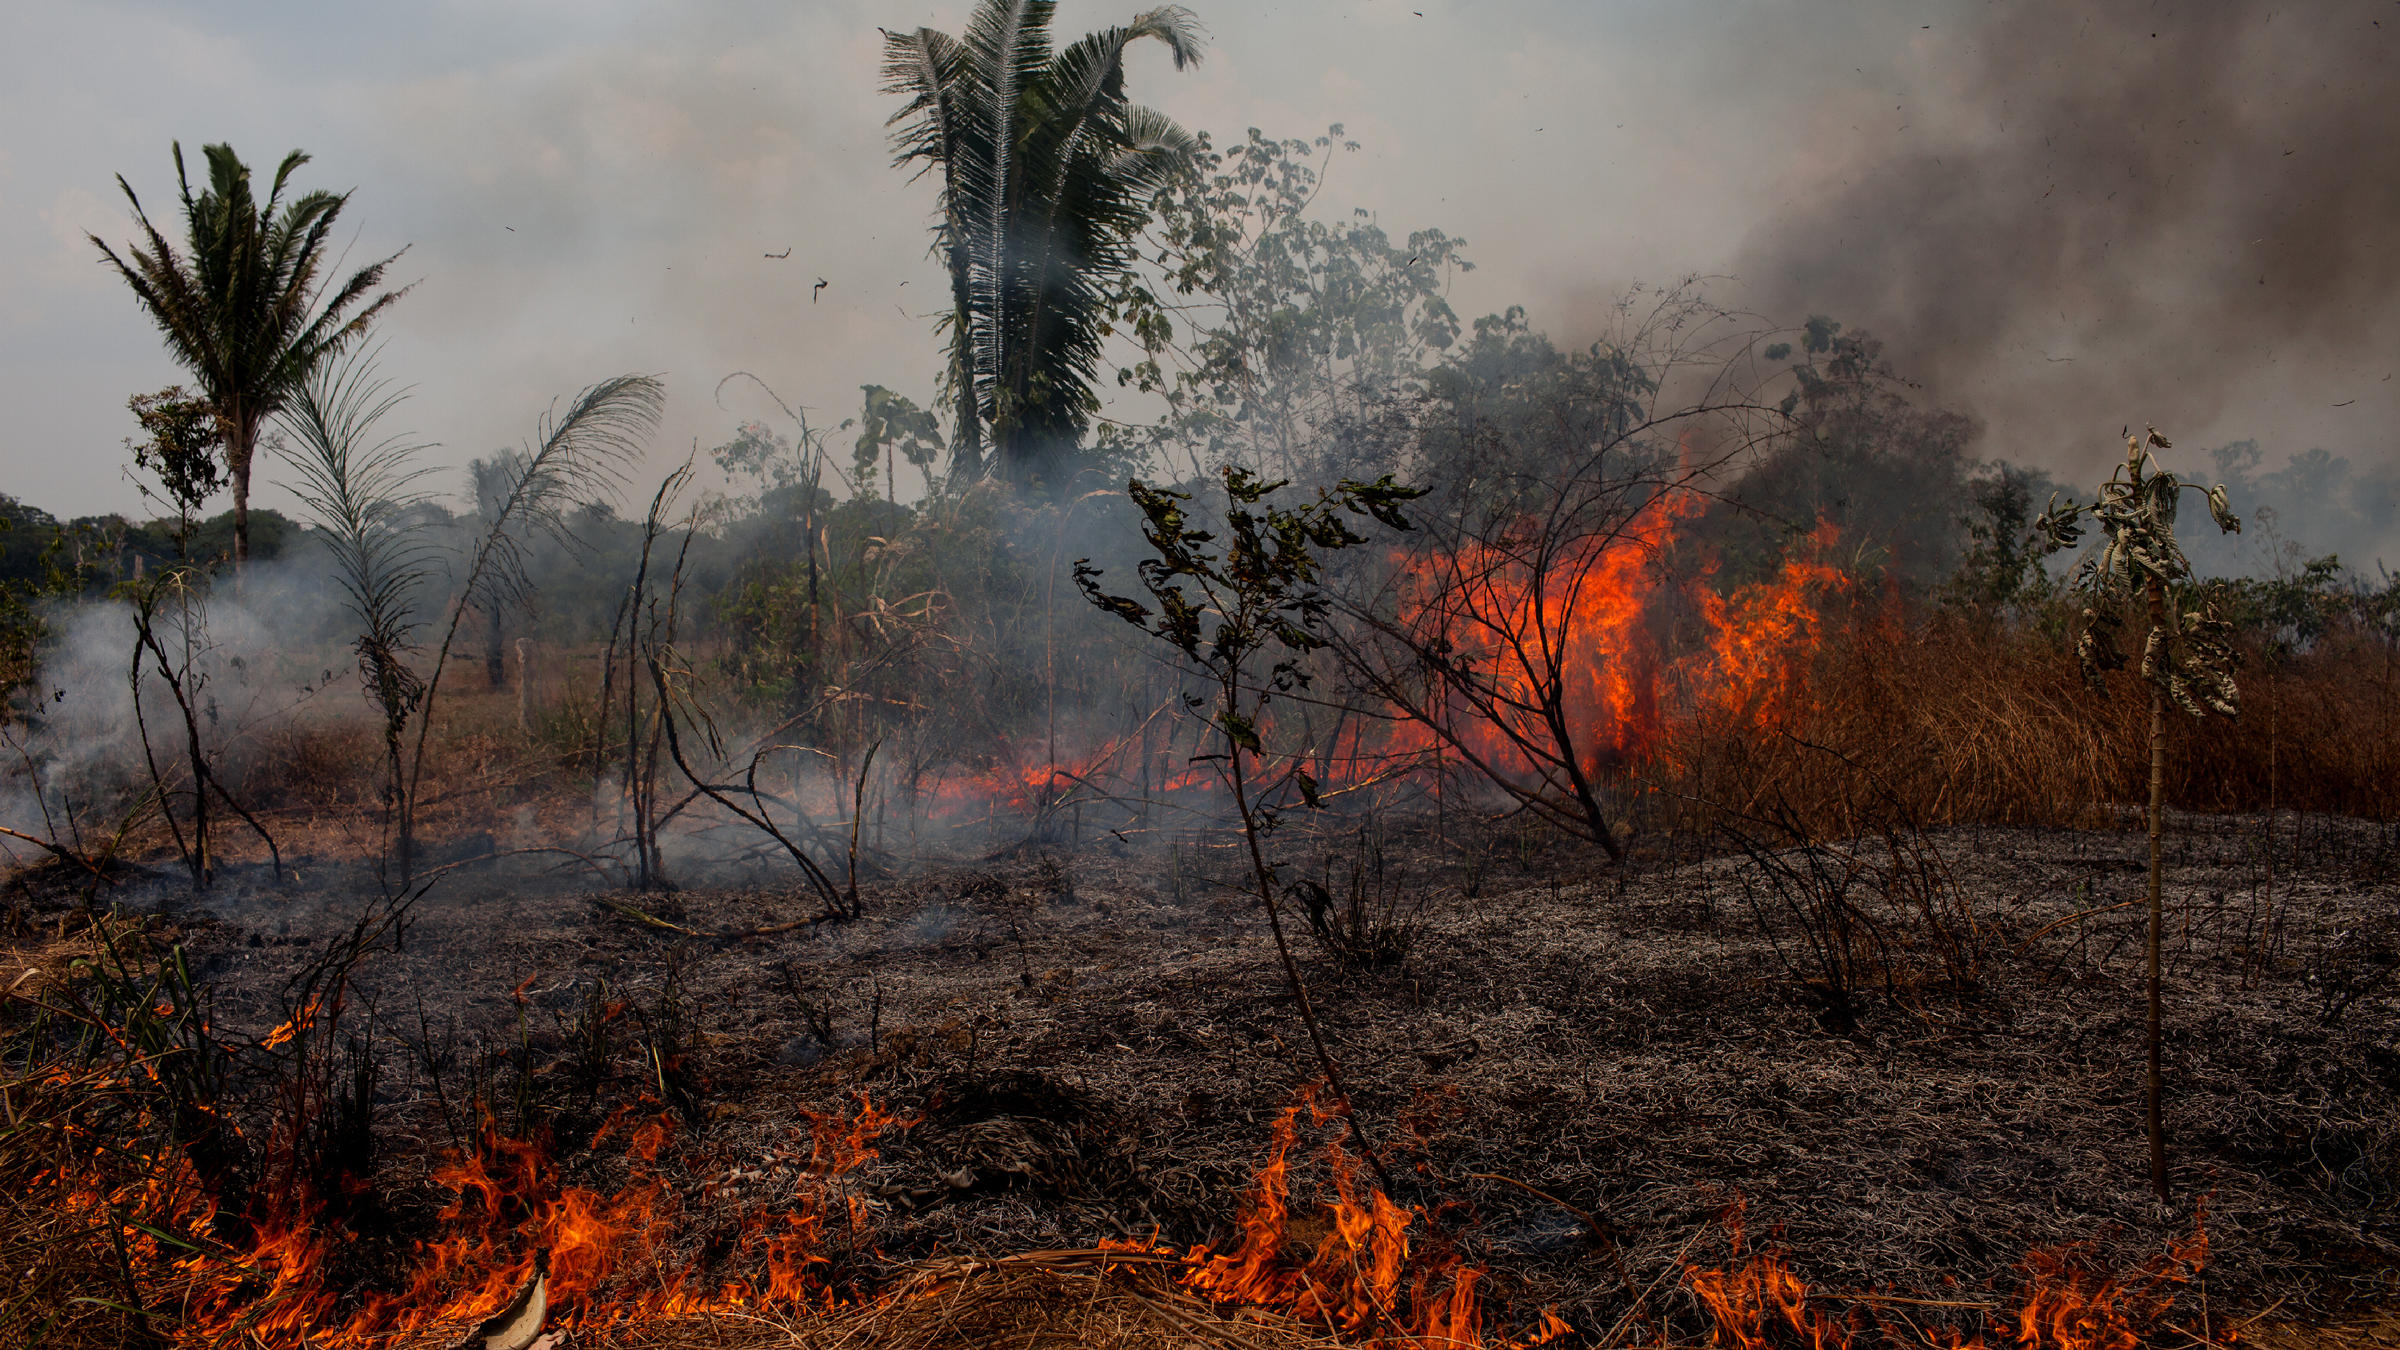 deforestation of the amazon Deforestation in brazil's amazon forests has flipped from a decreasing to an increasing trend, according to new annual figures recently released by the country's.